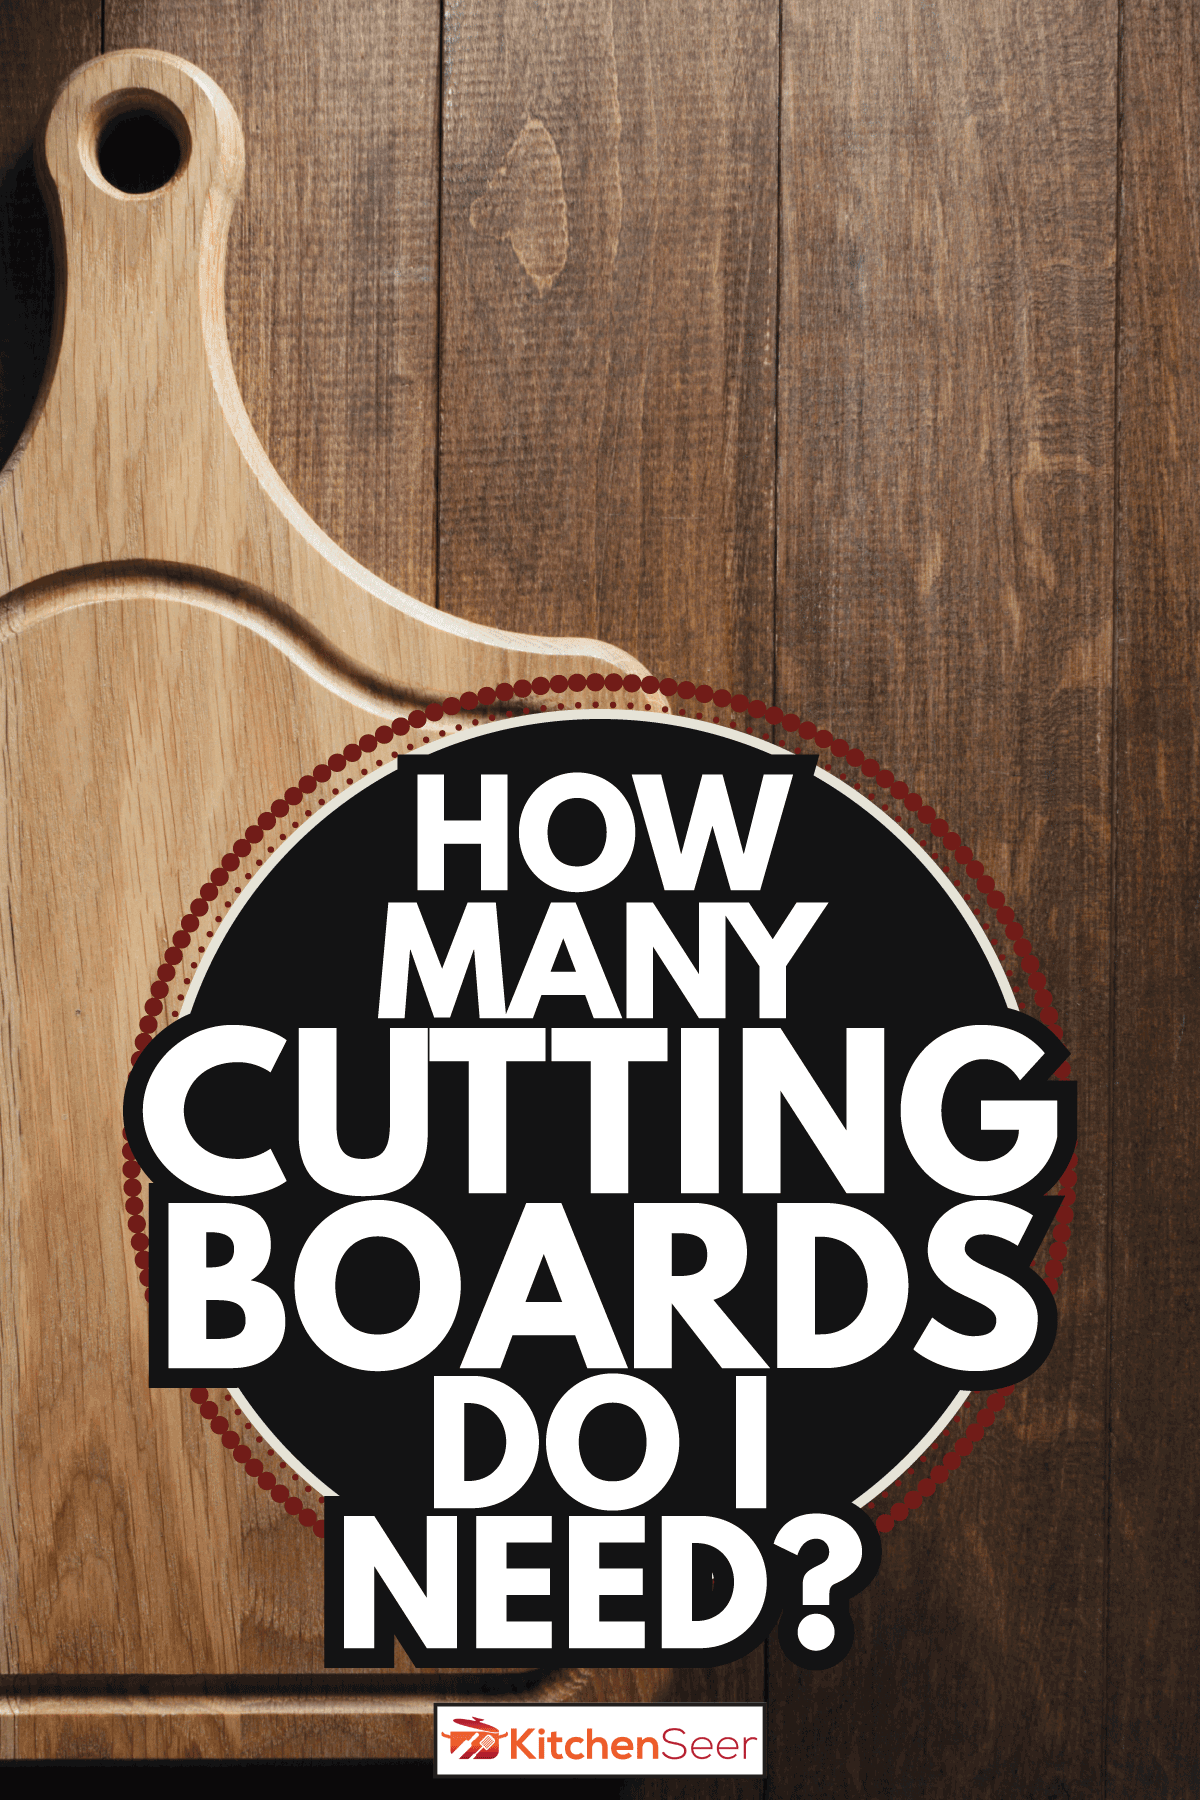 Cutting board on wooden background texture. How Many Cutting Boards Do I Need